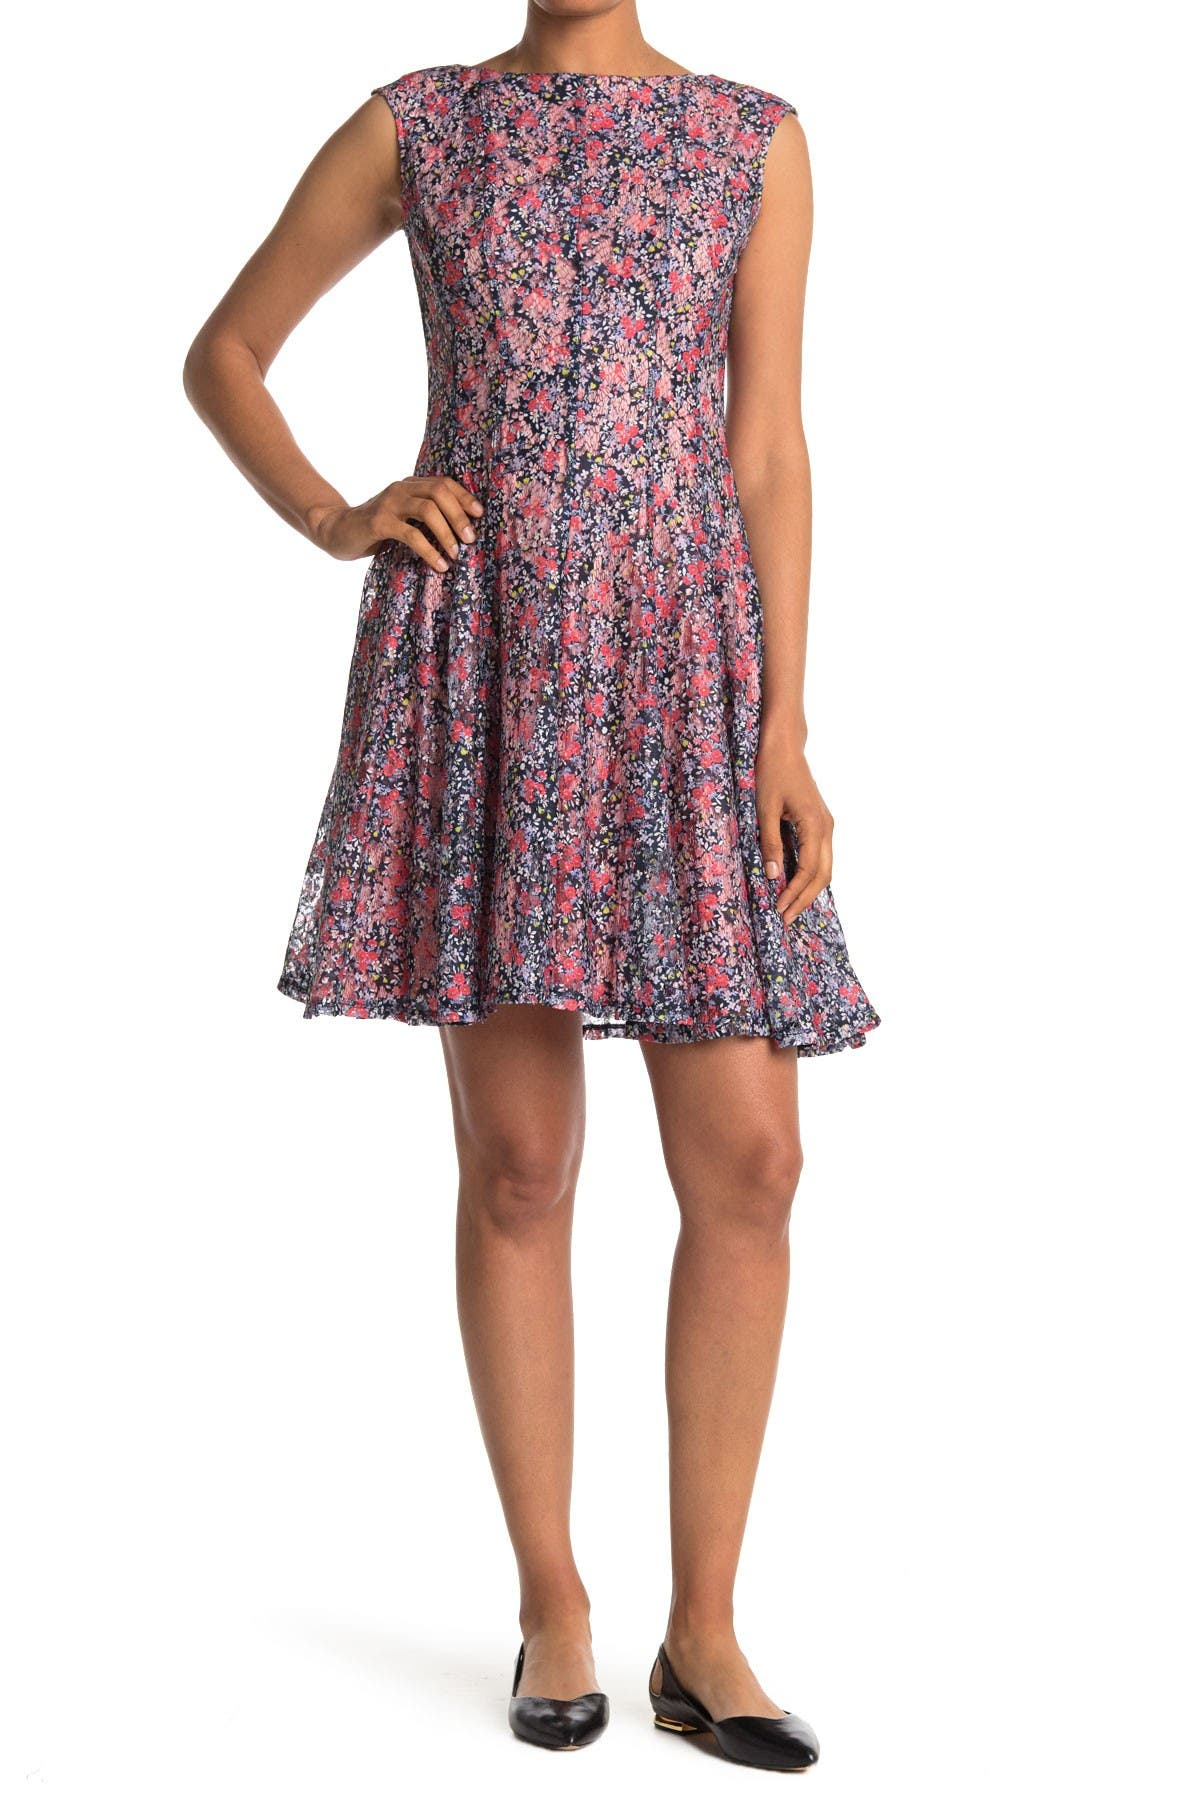 Image of DANNY & NICOLE Cap Sleeve Ditsy Floral Lace Dress